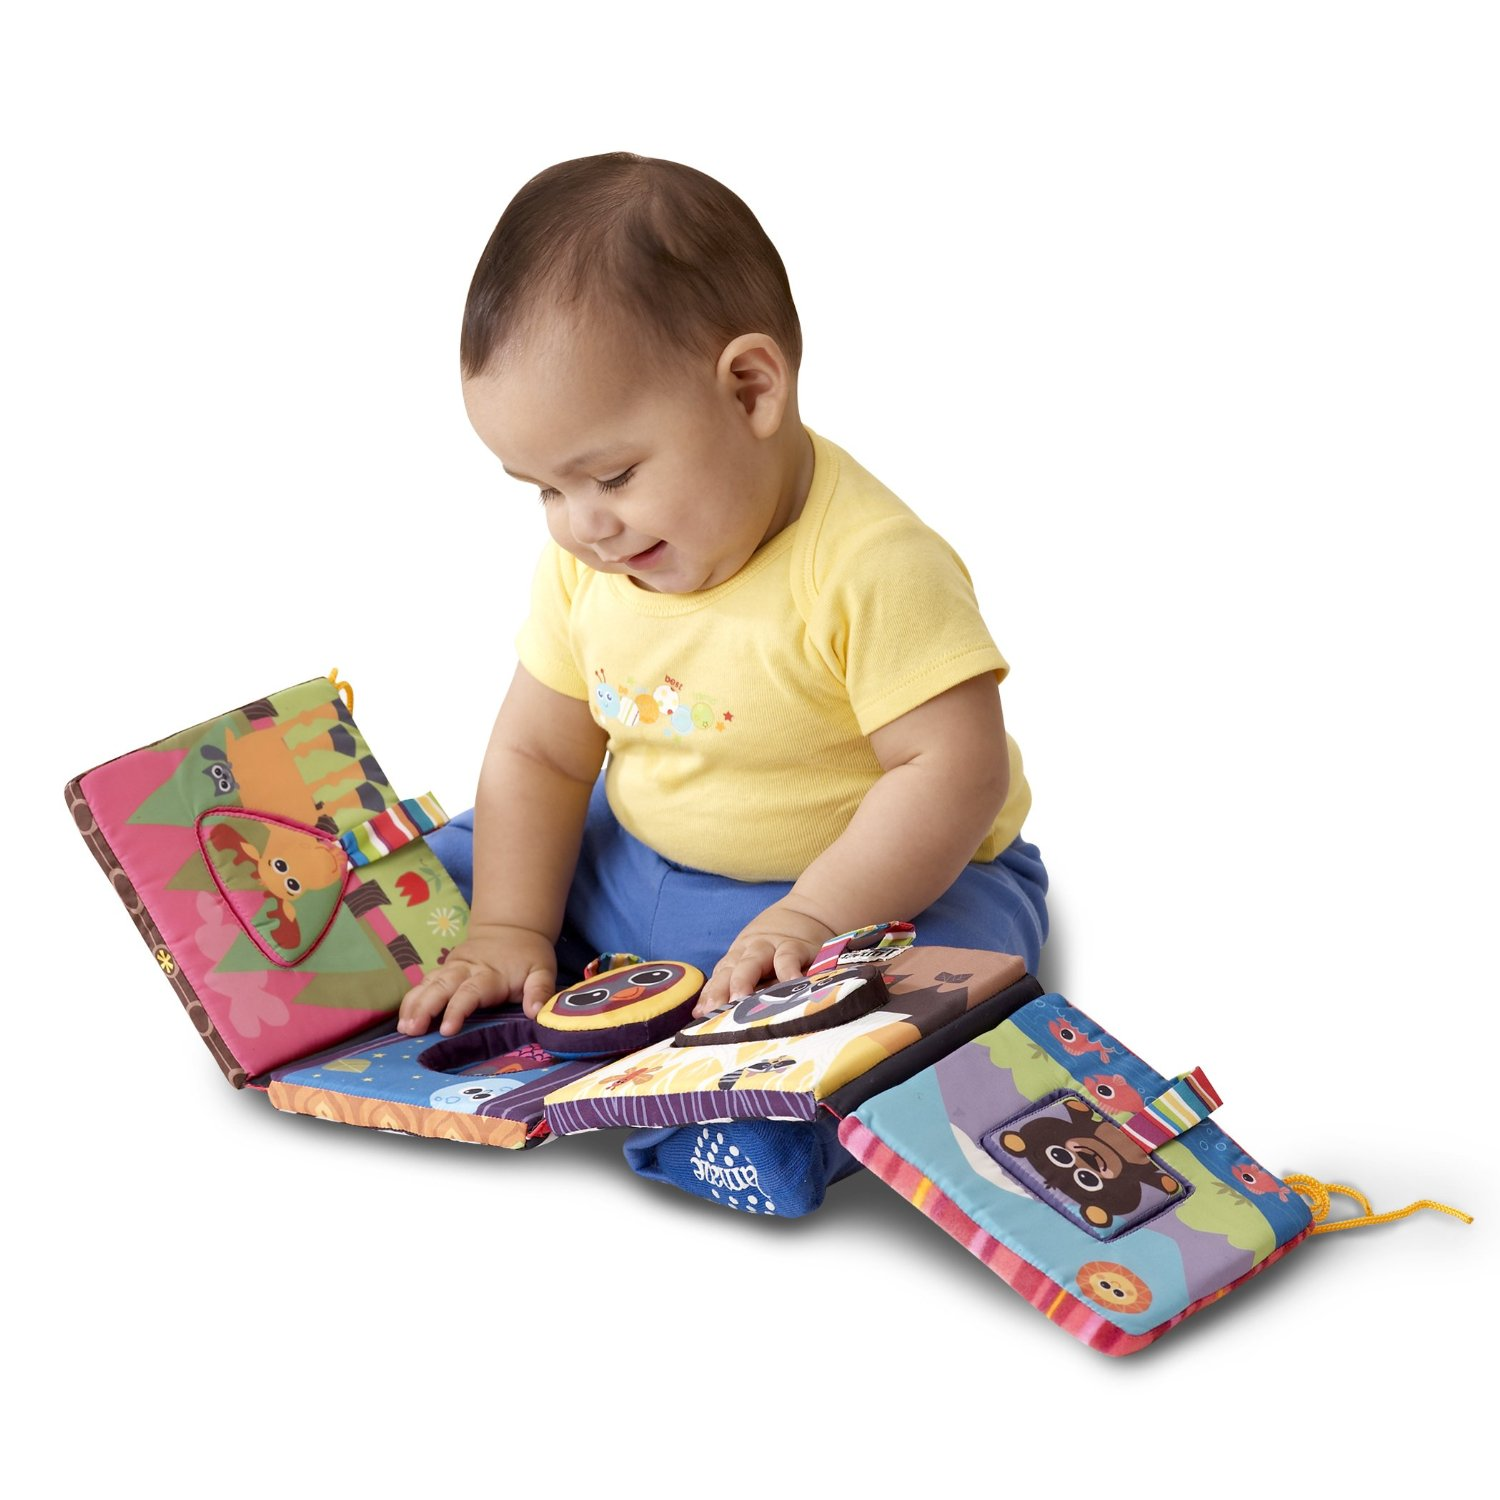 Baby Busy Book - hours of entertainment.. she loves it!